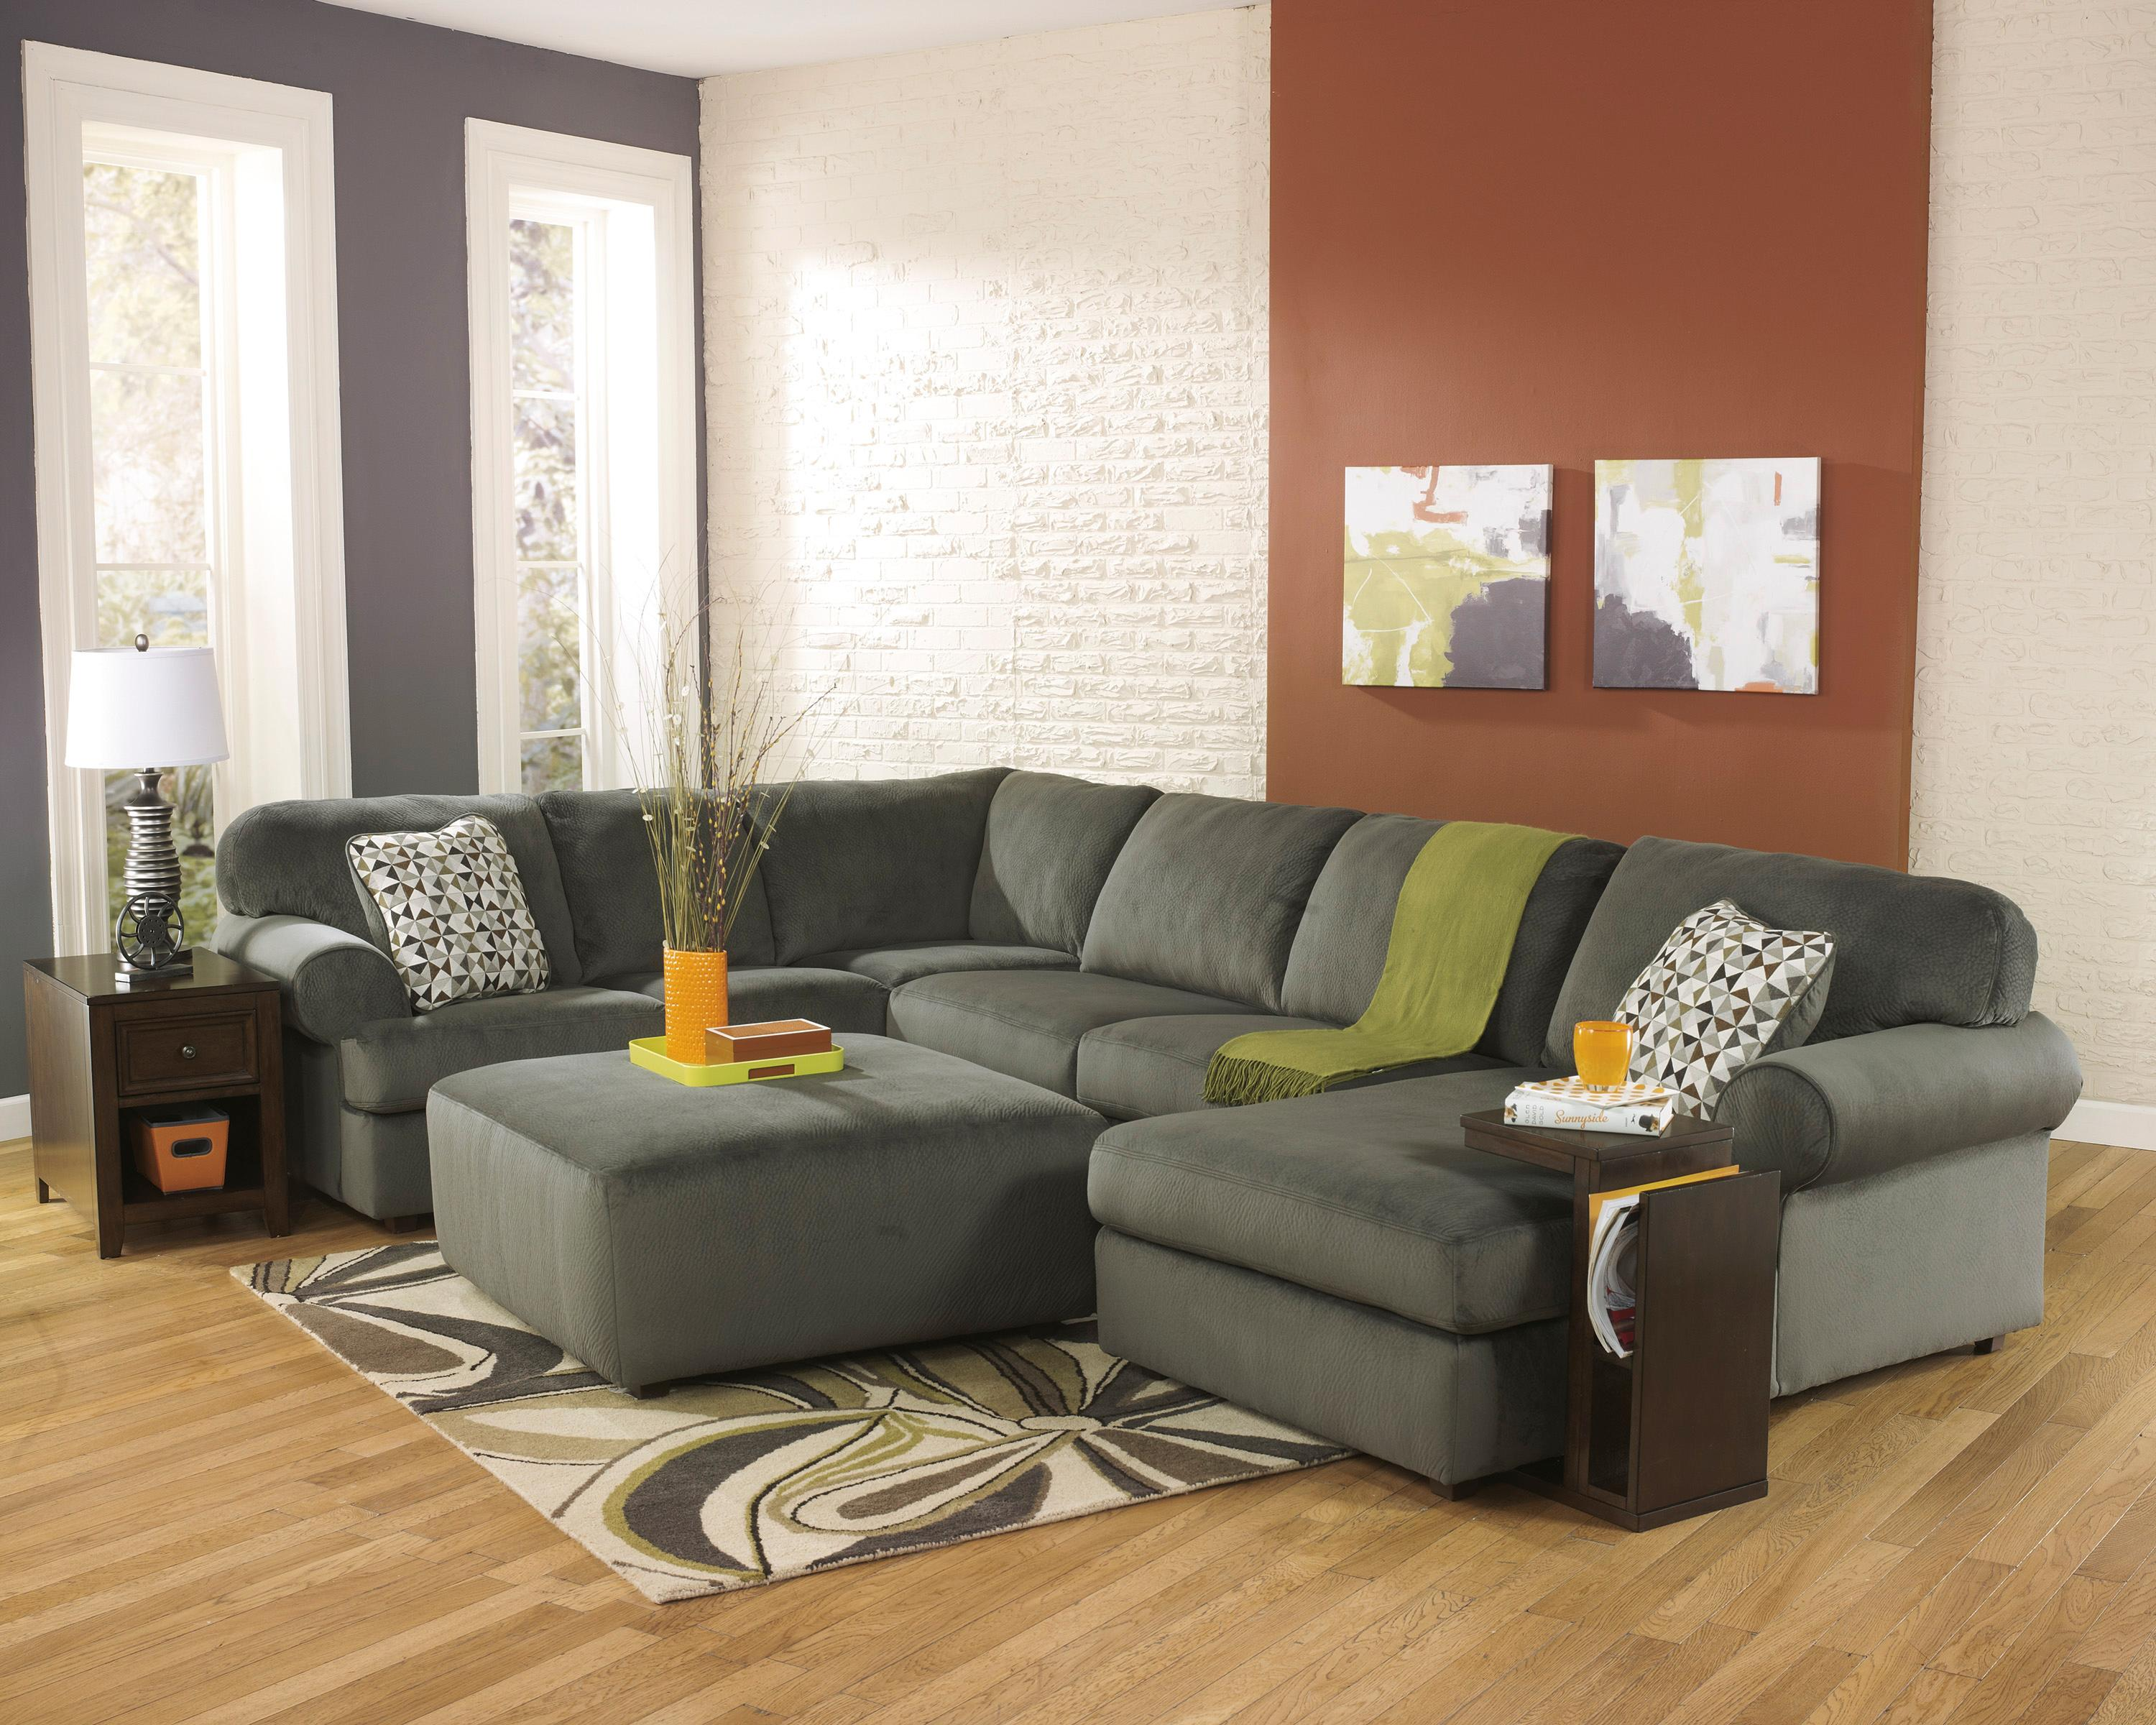 Signature Design by Ashley Jessa Place - Pewter Stationary Living Room Group - Item Number: 39803 Living Room Group 1